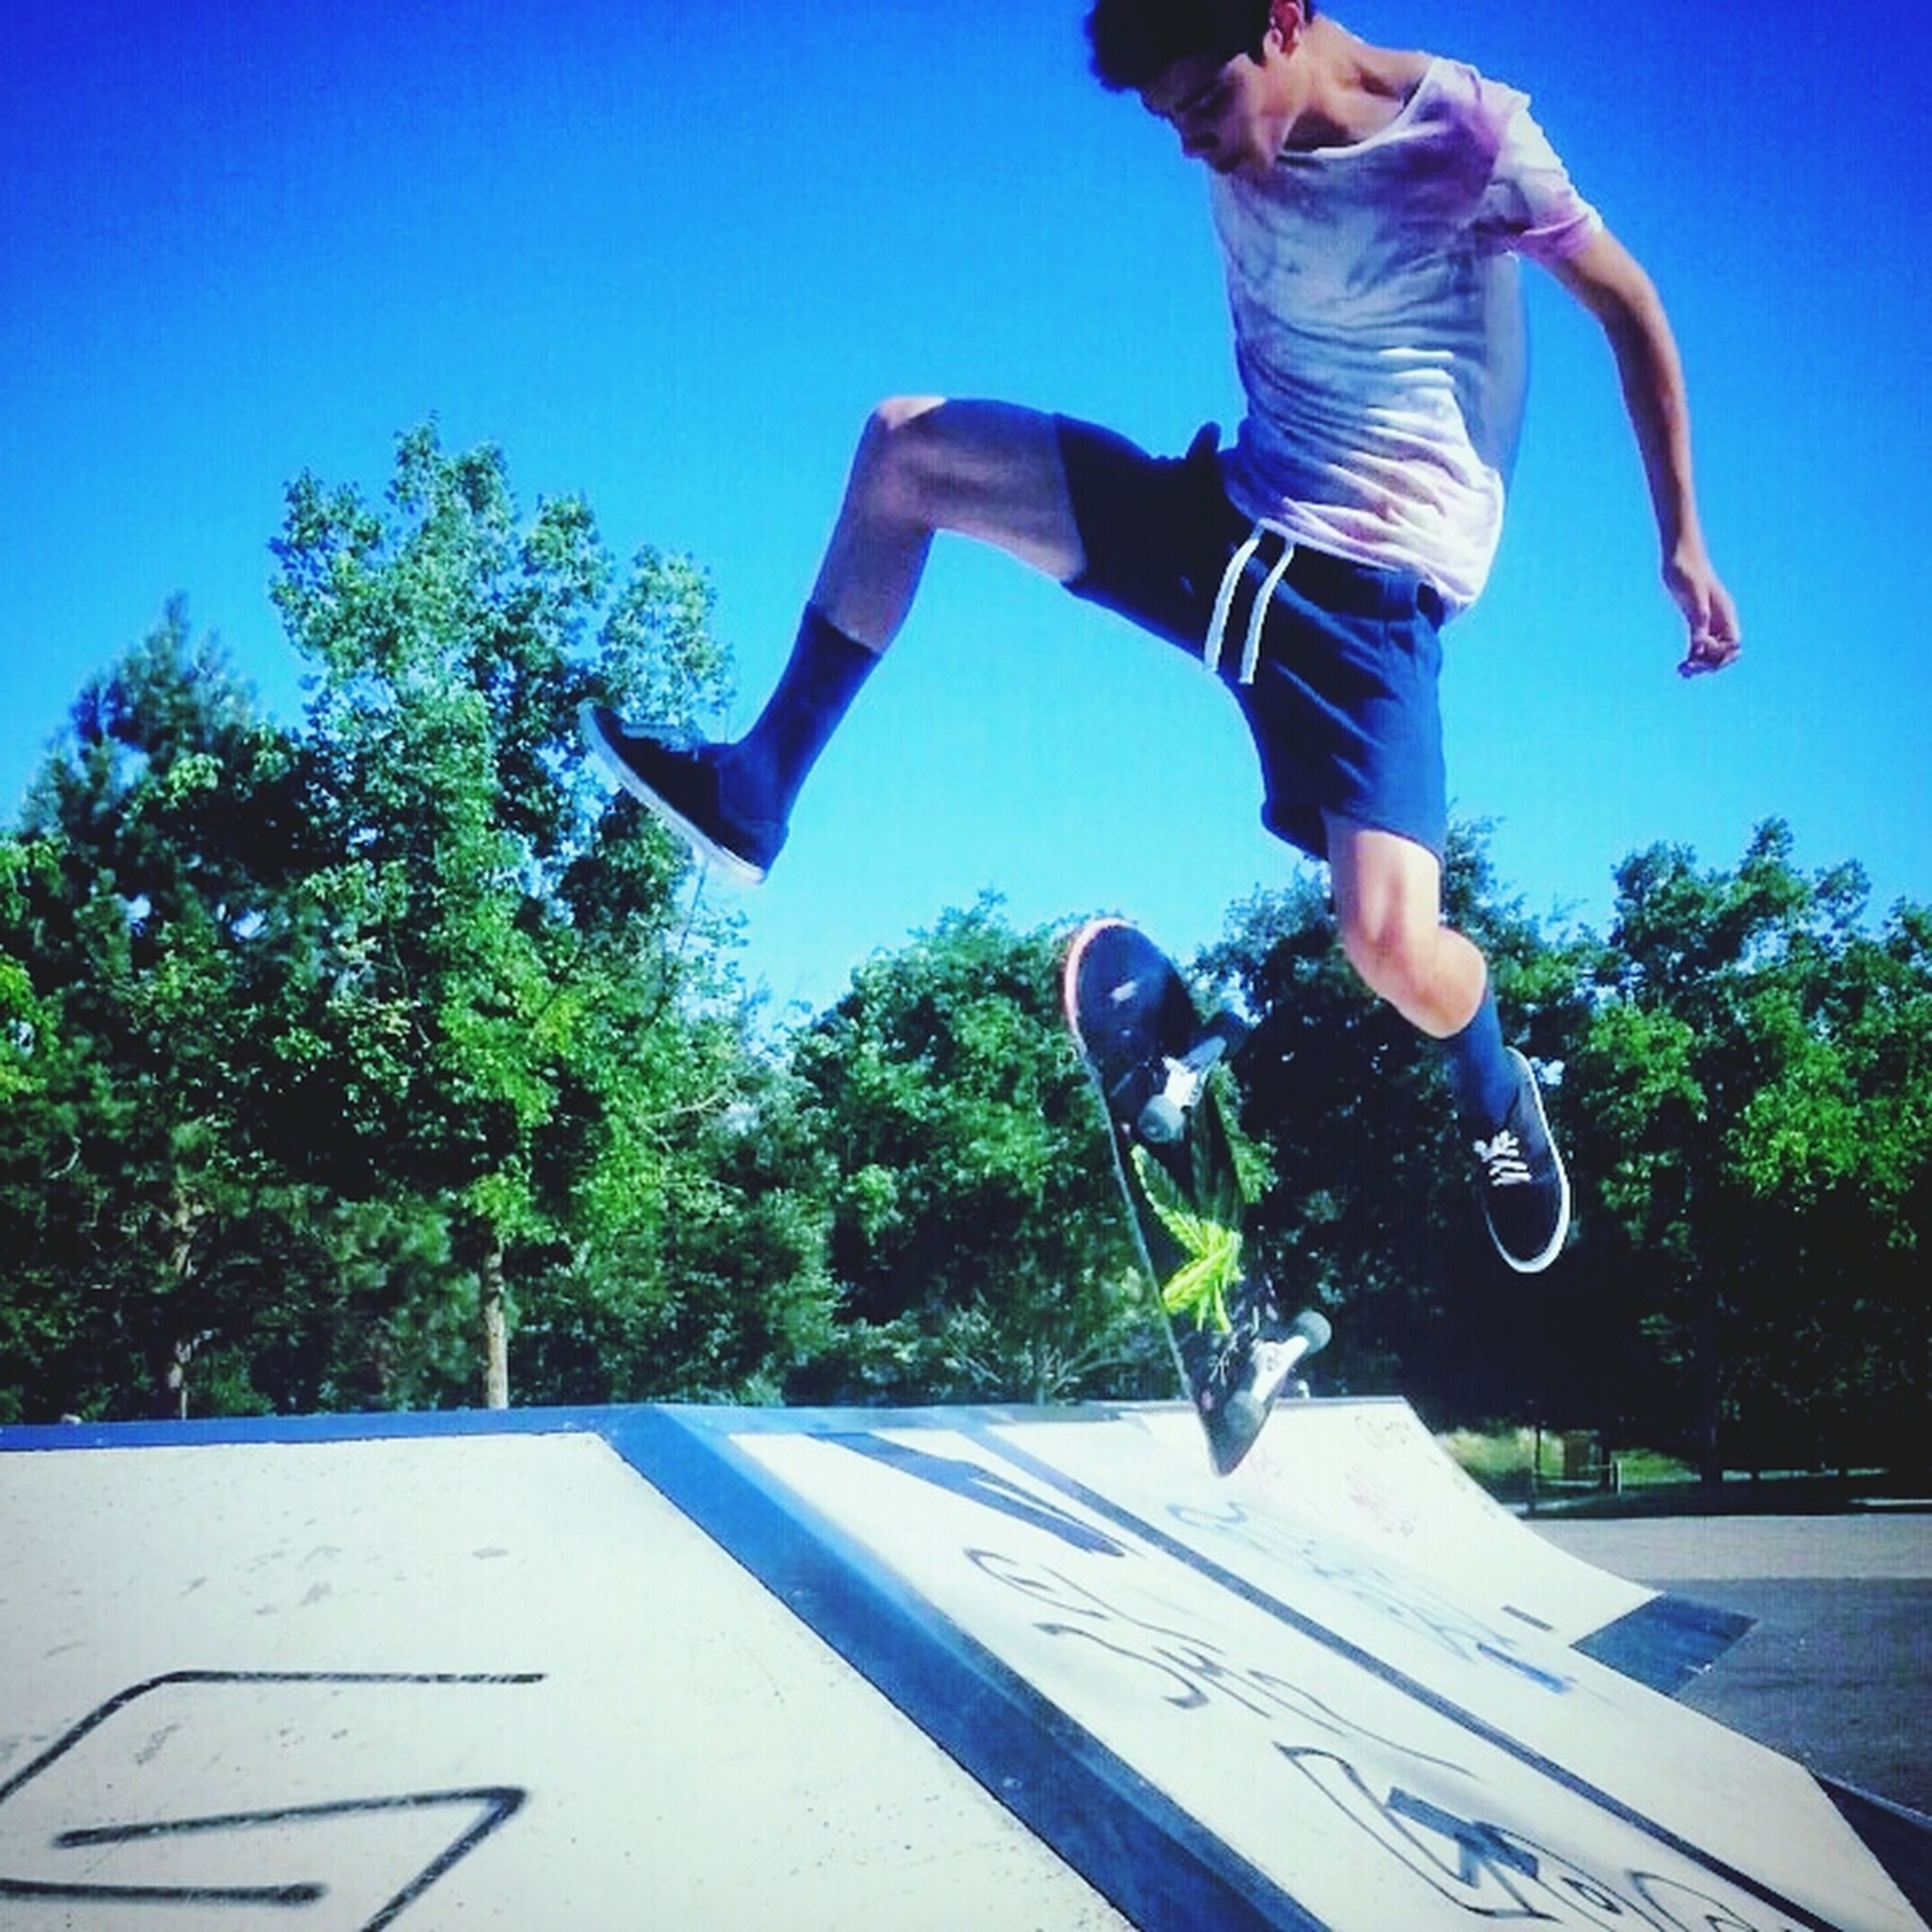 lifestyles, leisure activity, tree, full length, blue, casual clothing, mid-air, jumping, sunlight, clear sky, enjoyment, young adult, fun, skill, men, sport, skateboarding, young men